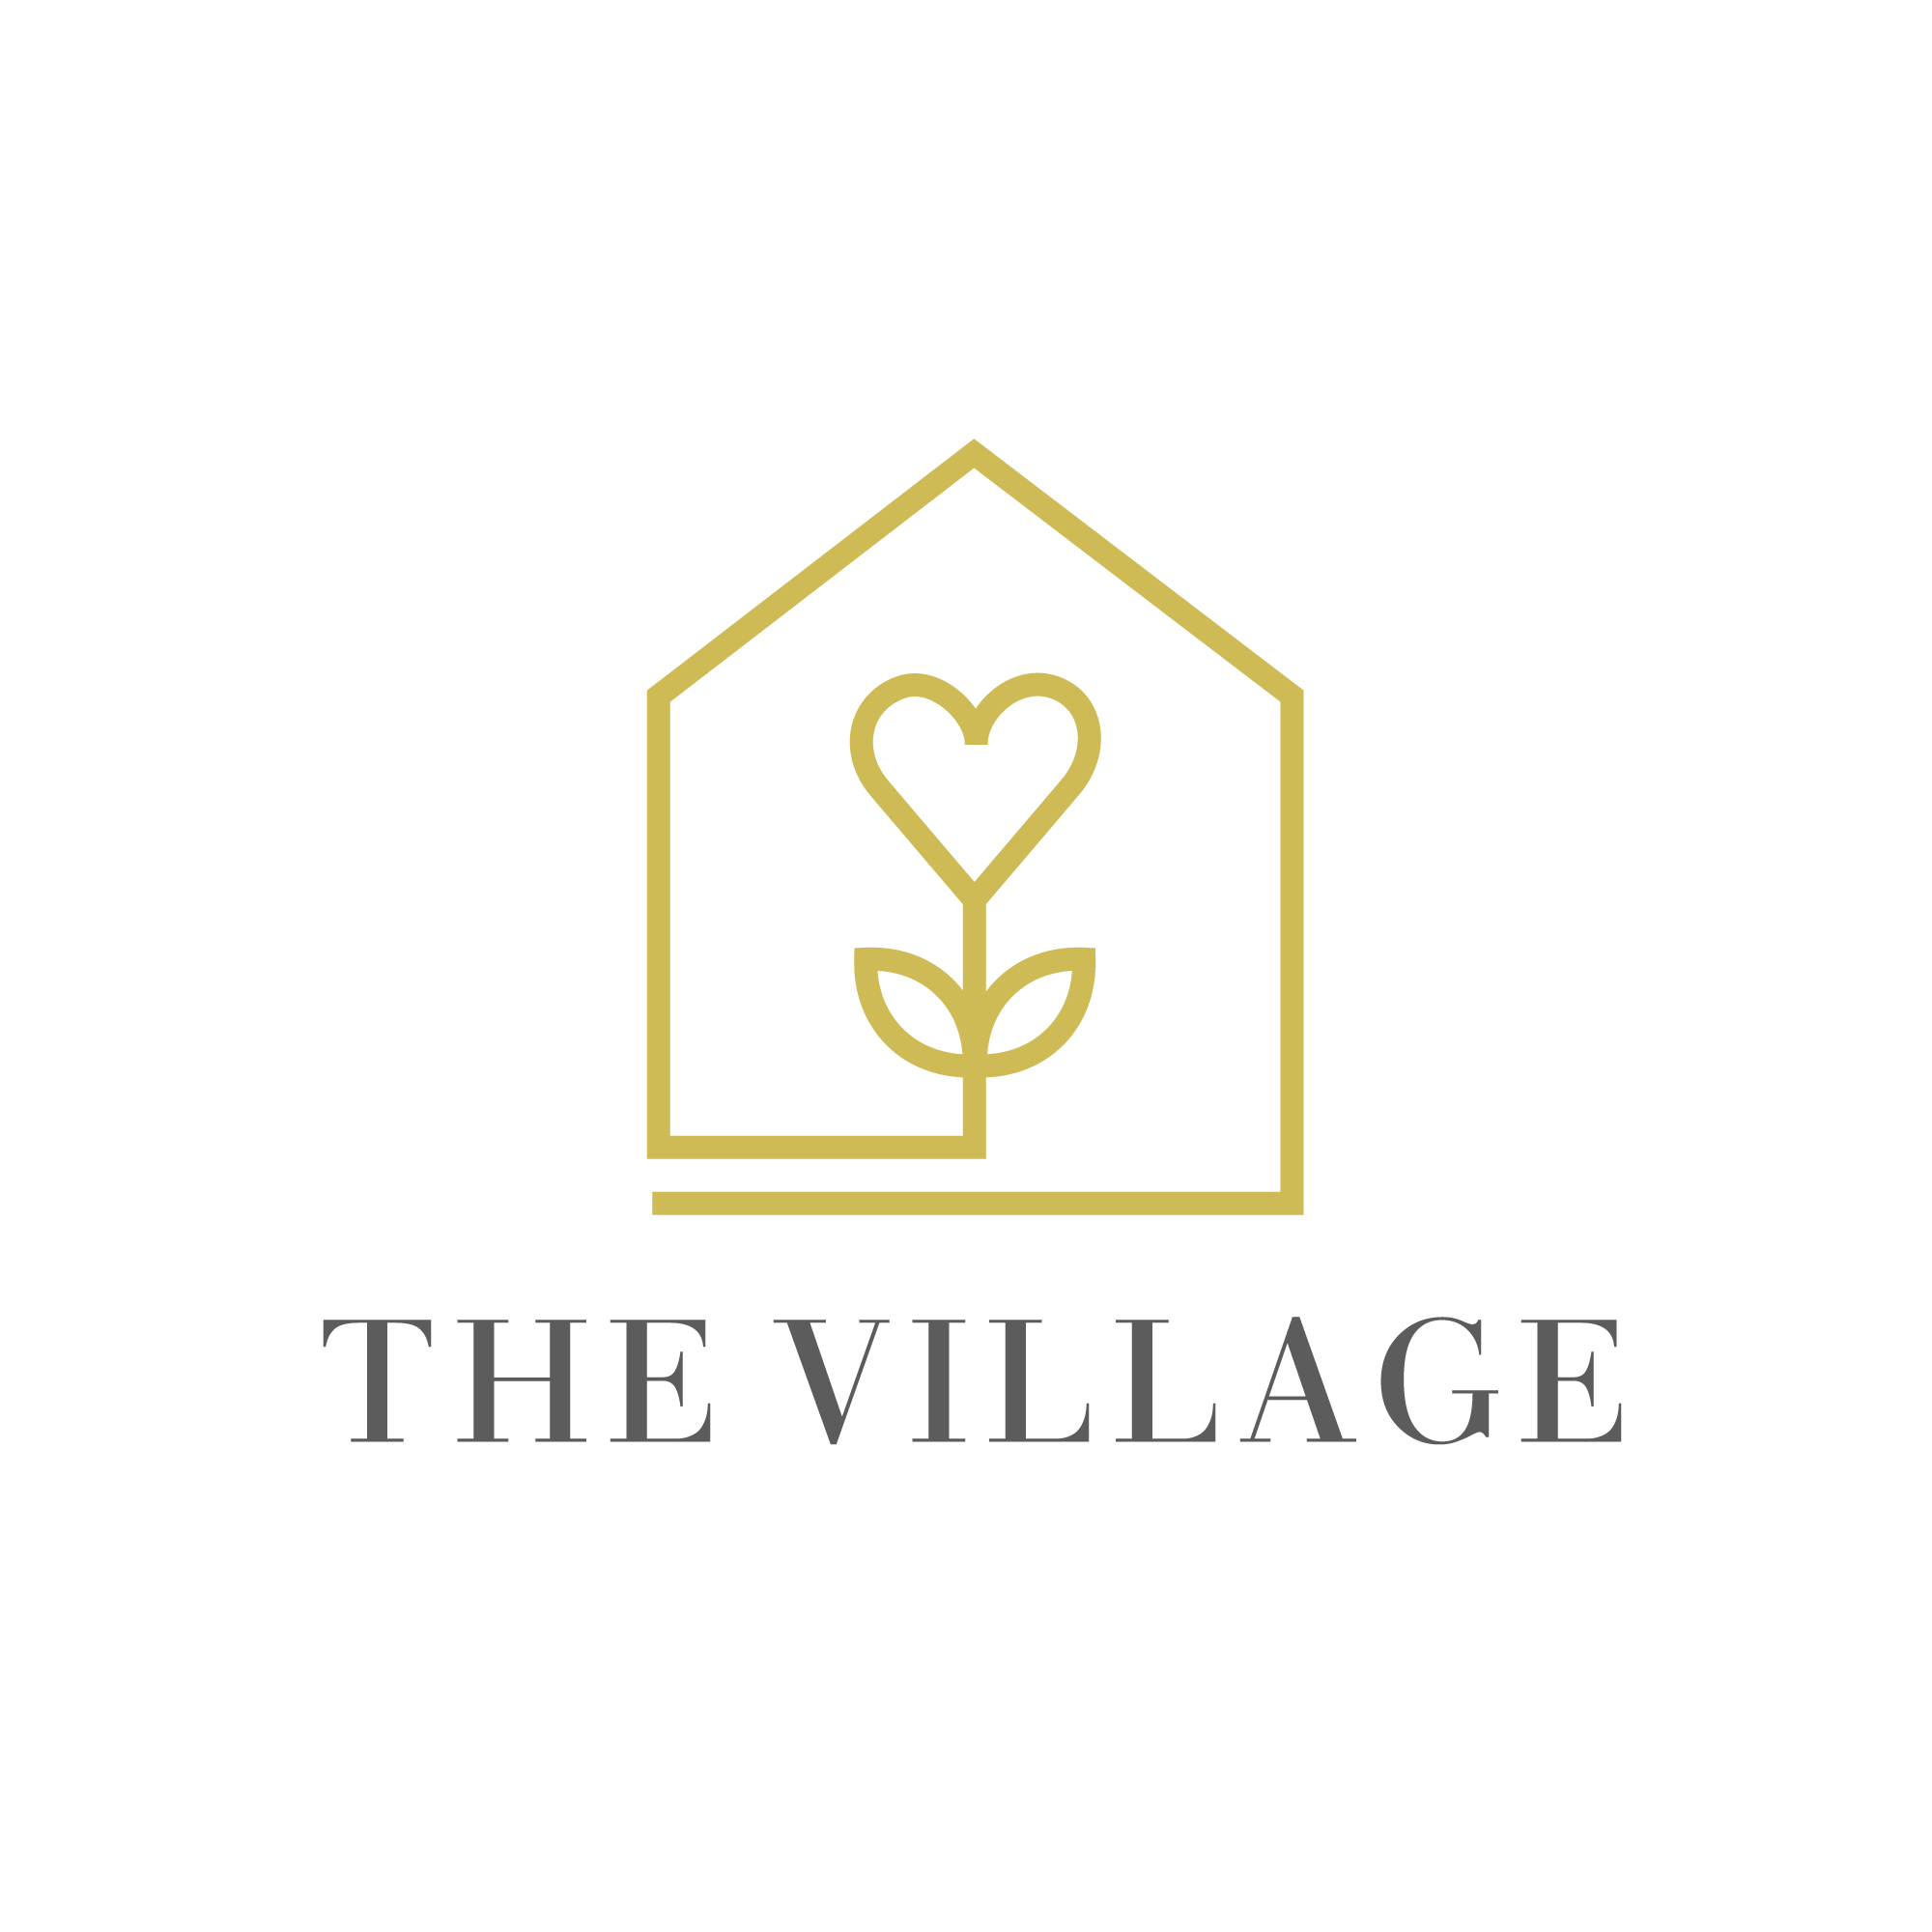 Design a Logo that recreates the feeling of the village for parents lonely in their parenting journe